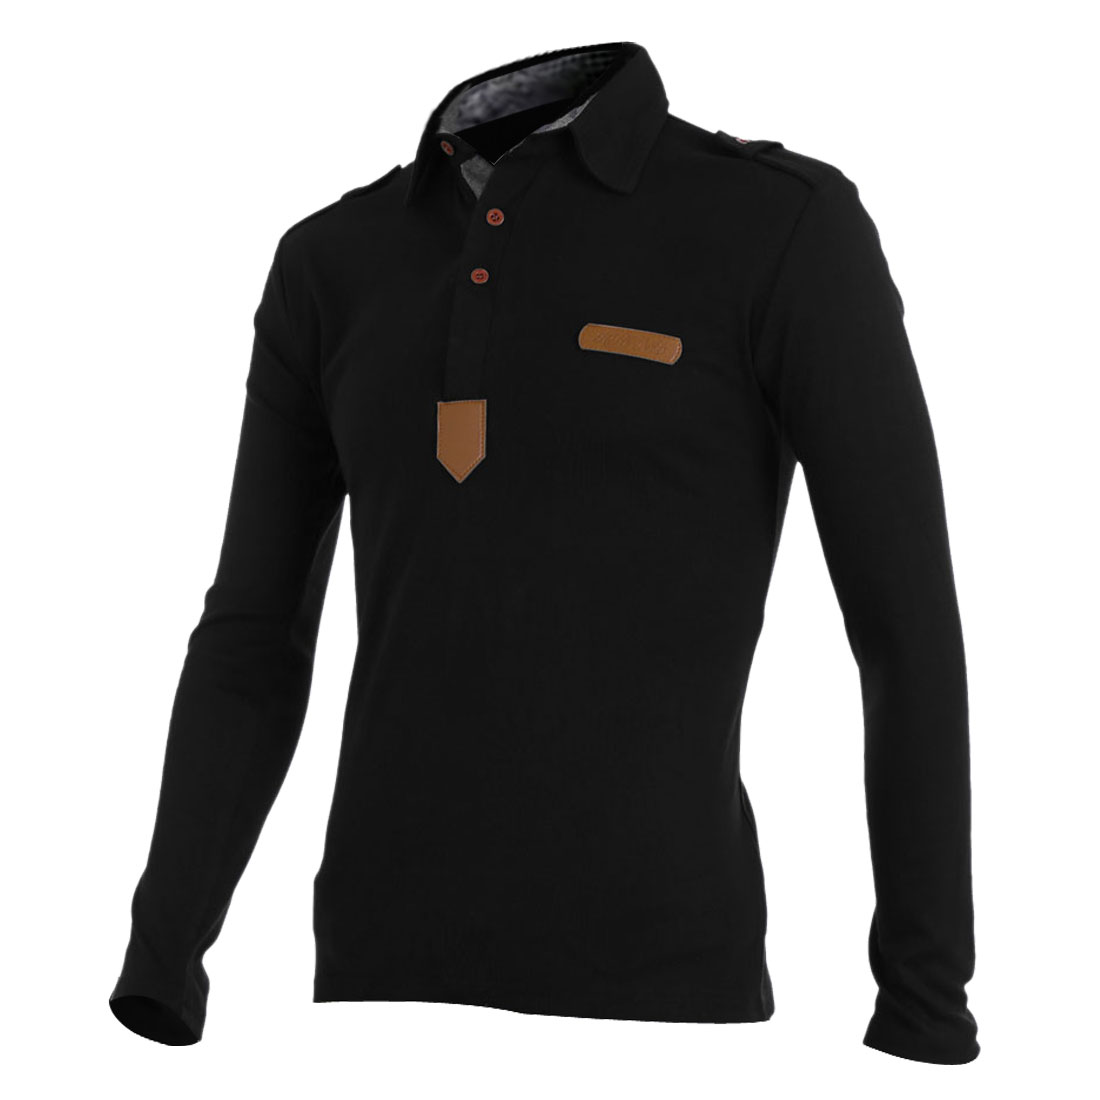 Men Half Buttons Decor Close-fitting Black Polo Shirt S